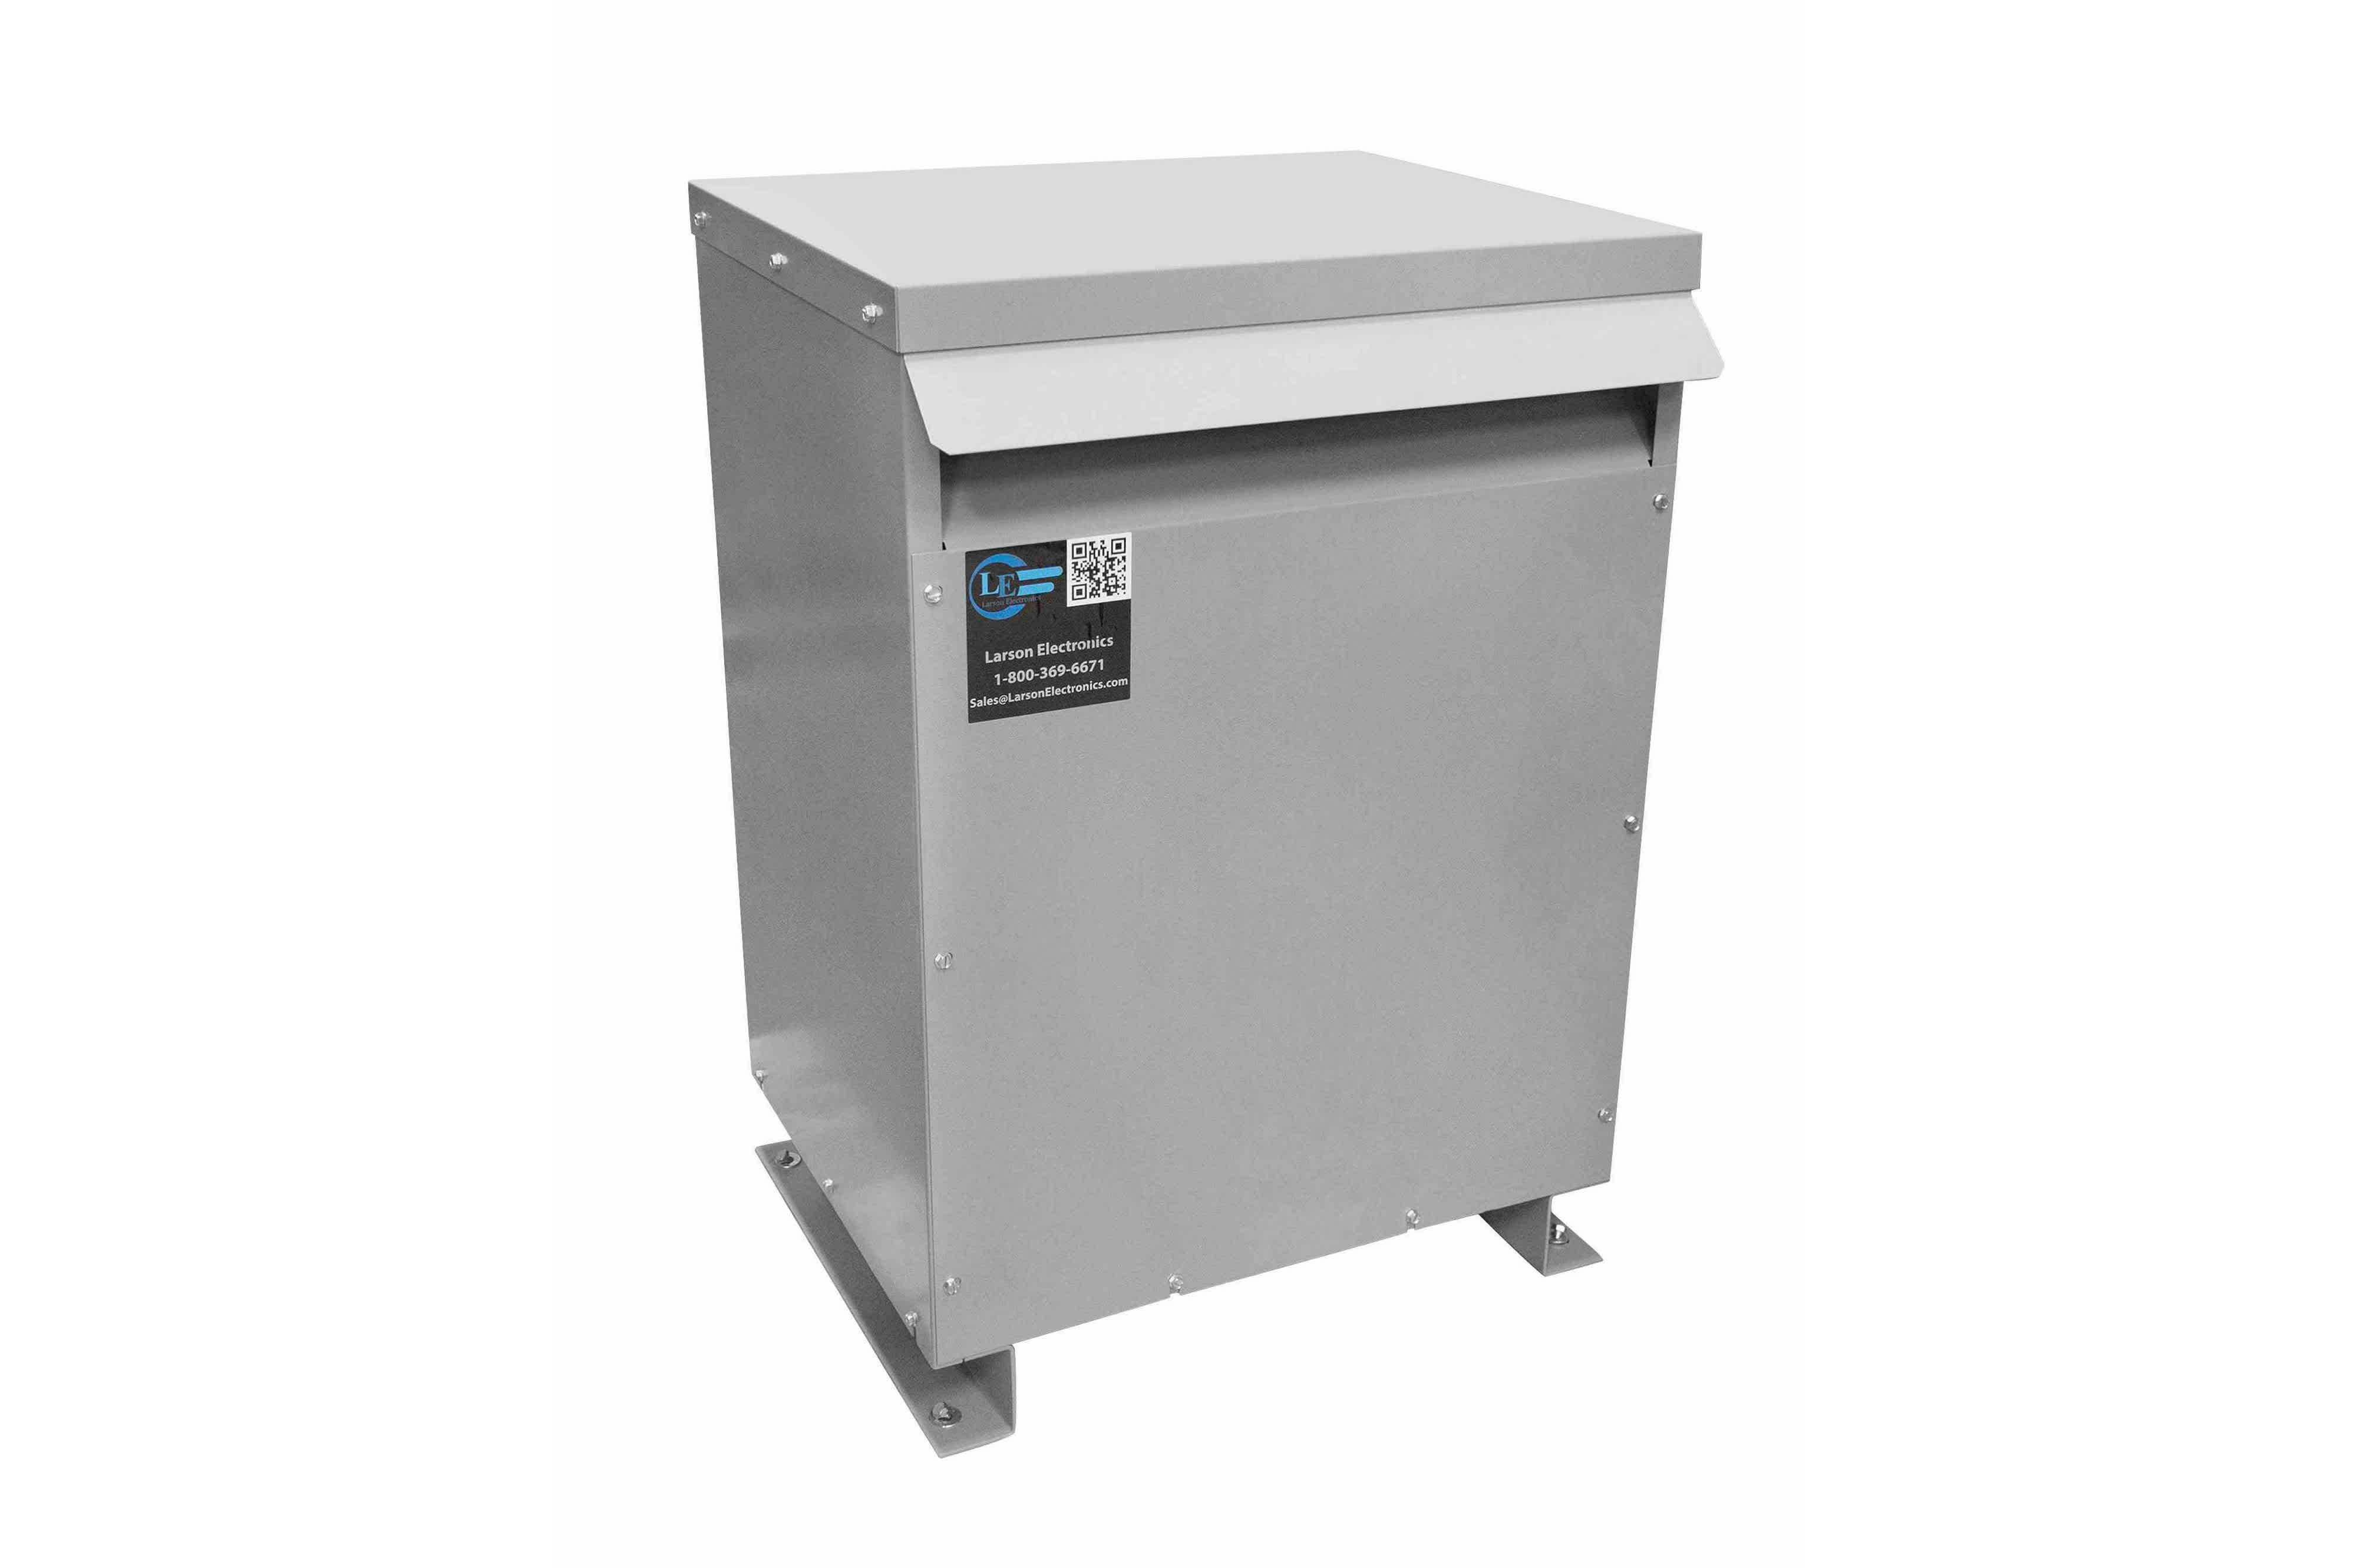 115 kVA 3PH Isolation Transformer, 600V Wye Primary, 208Y/120 Wye-N Secondary, N3R, Ventilated, 60 Hz